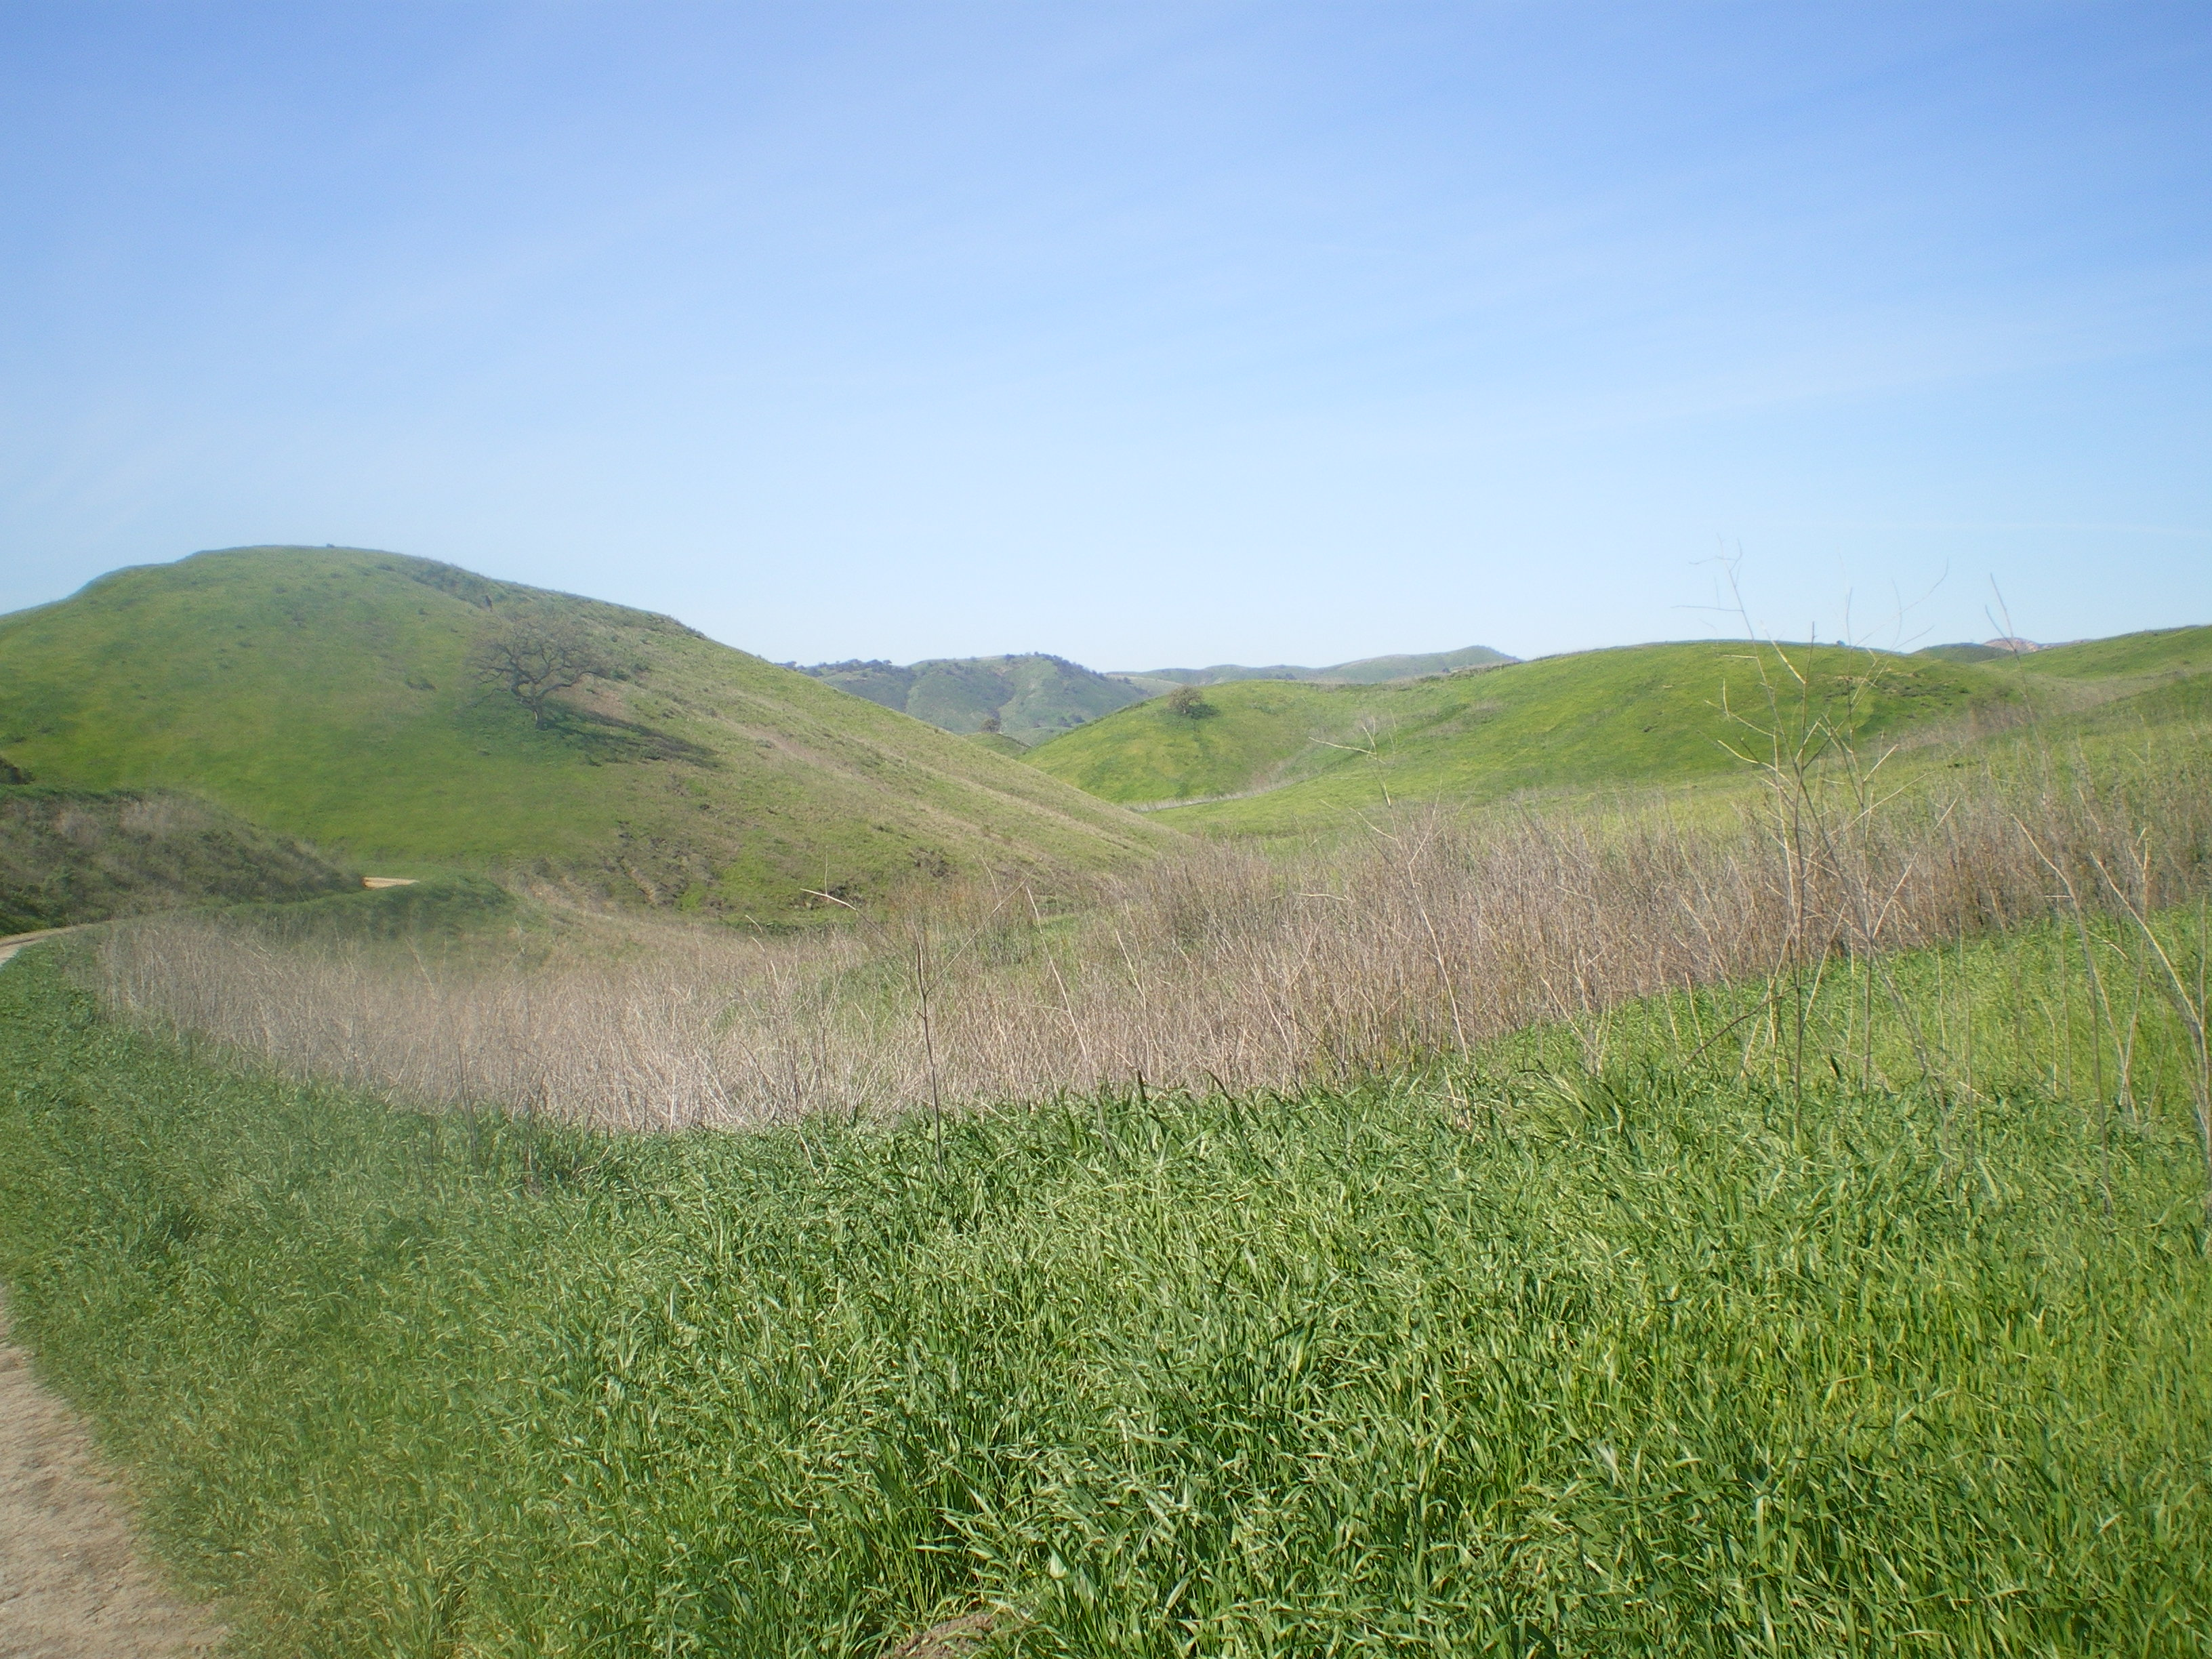 hills like white elephants related keywords suggestions hills description rolling hills at upper las virgenes canyon jpg